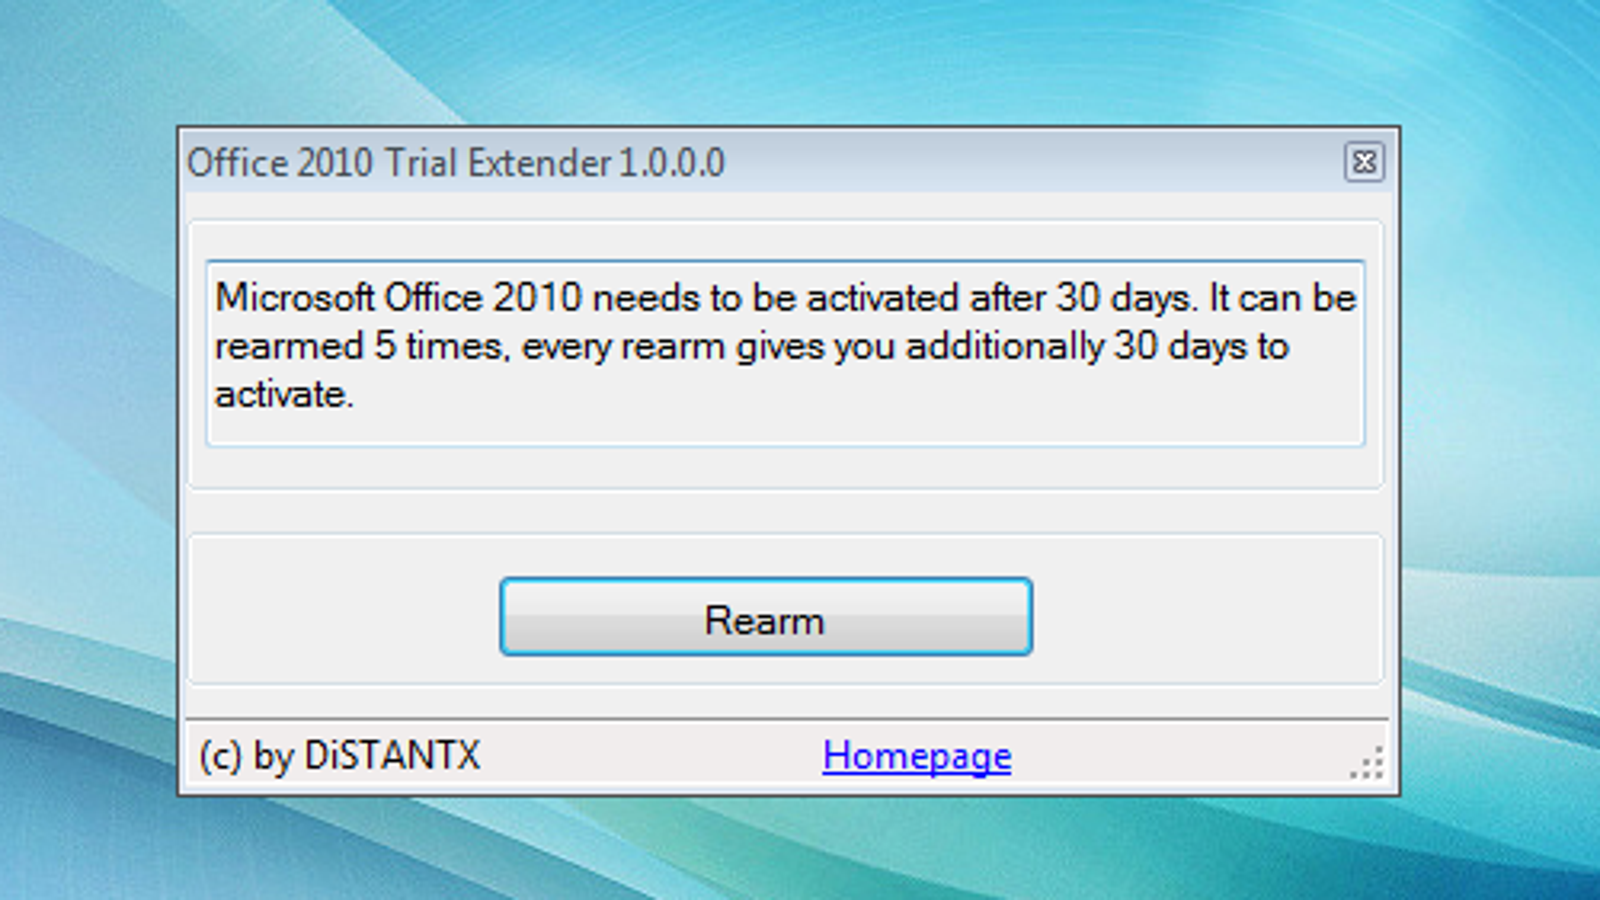 Office 2010 Trial Extender Activates Office 2010 for up to 180 Days